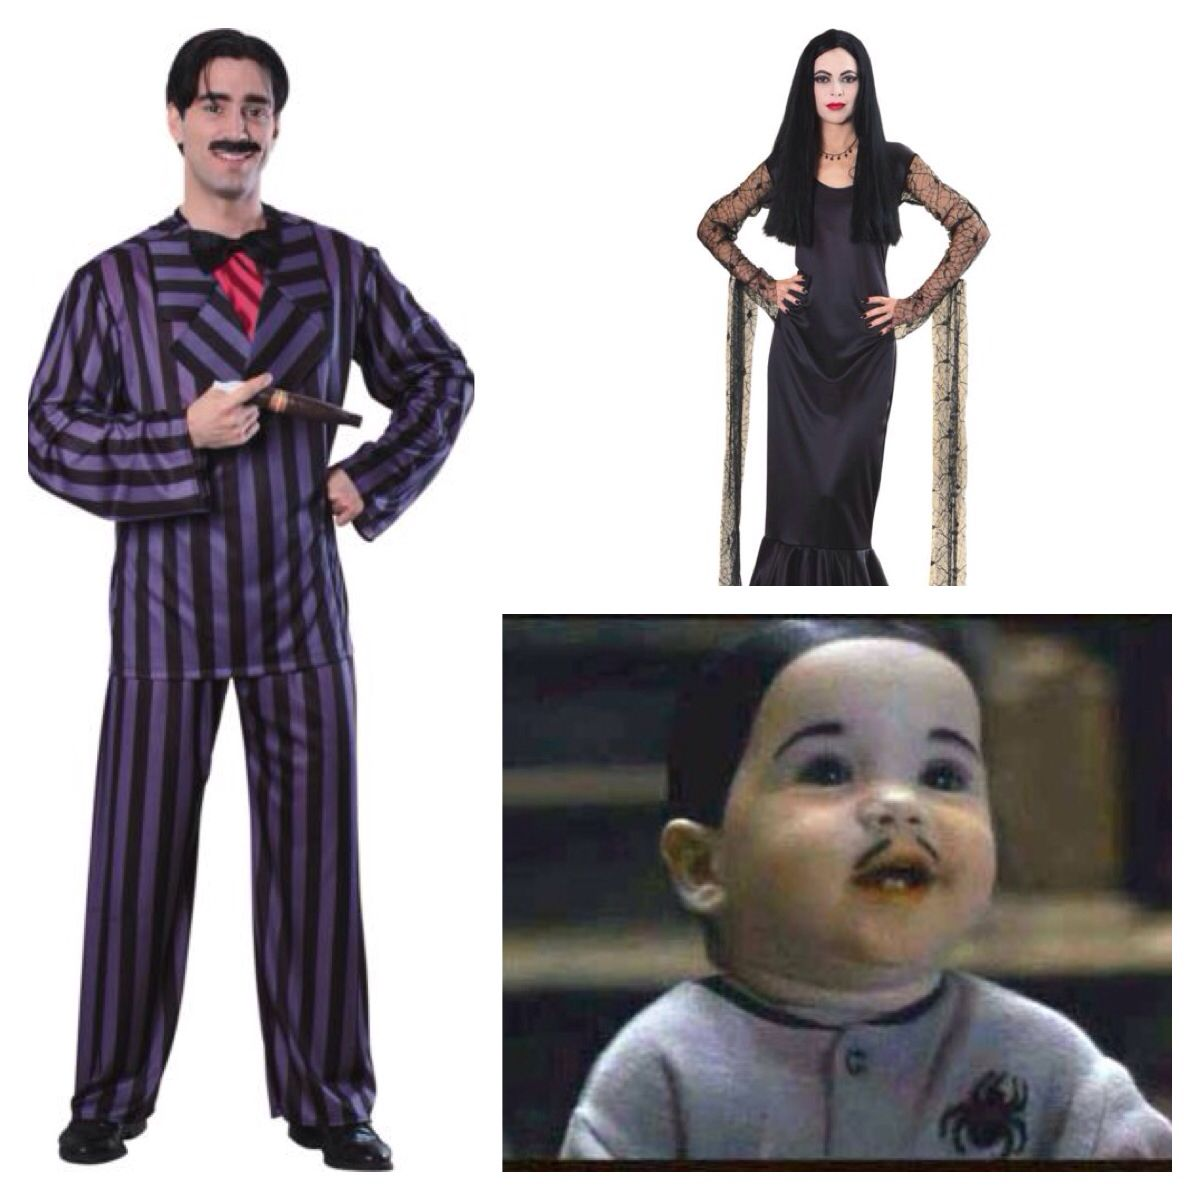 addams family themed costumes- gomez, morticia and pubert | holidays